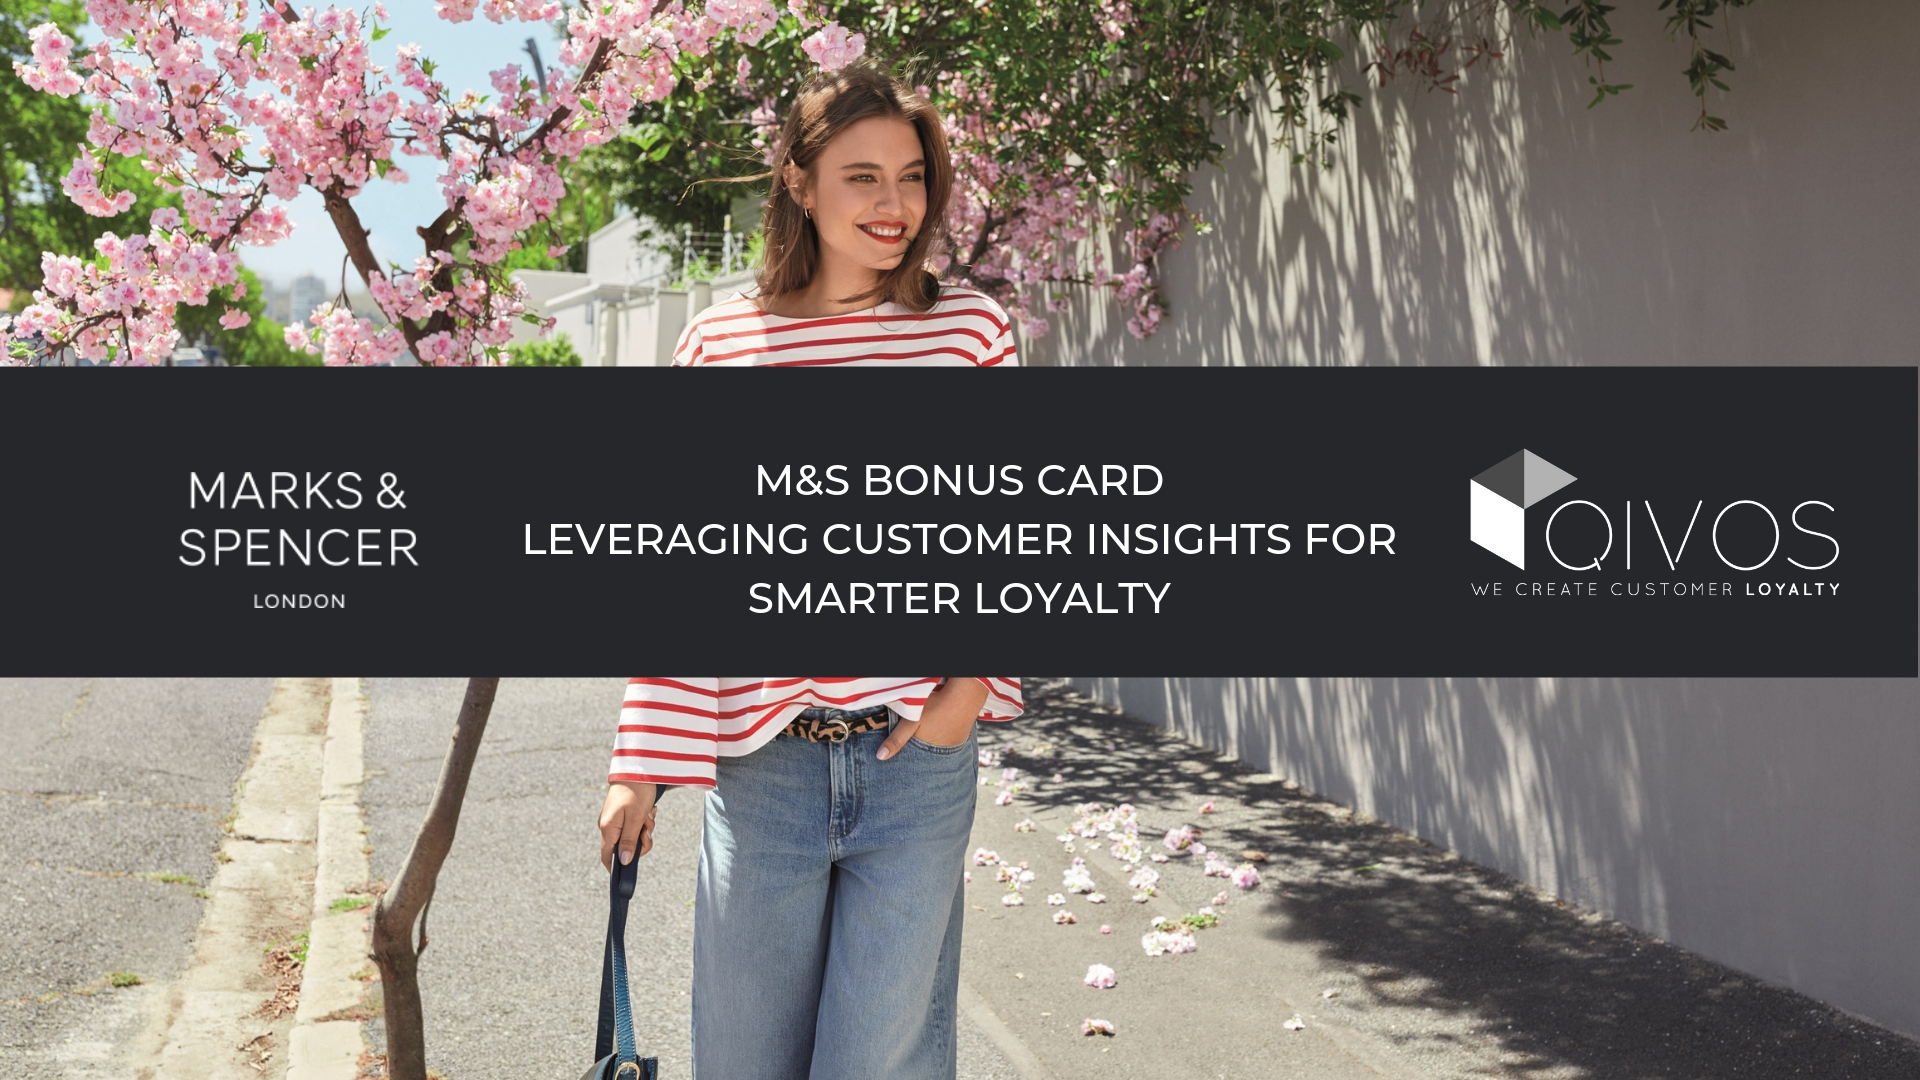 Best Use of Business Analytics and Customer Insights